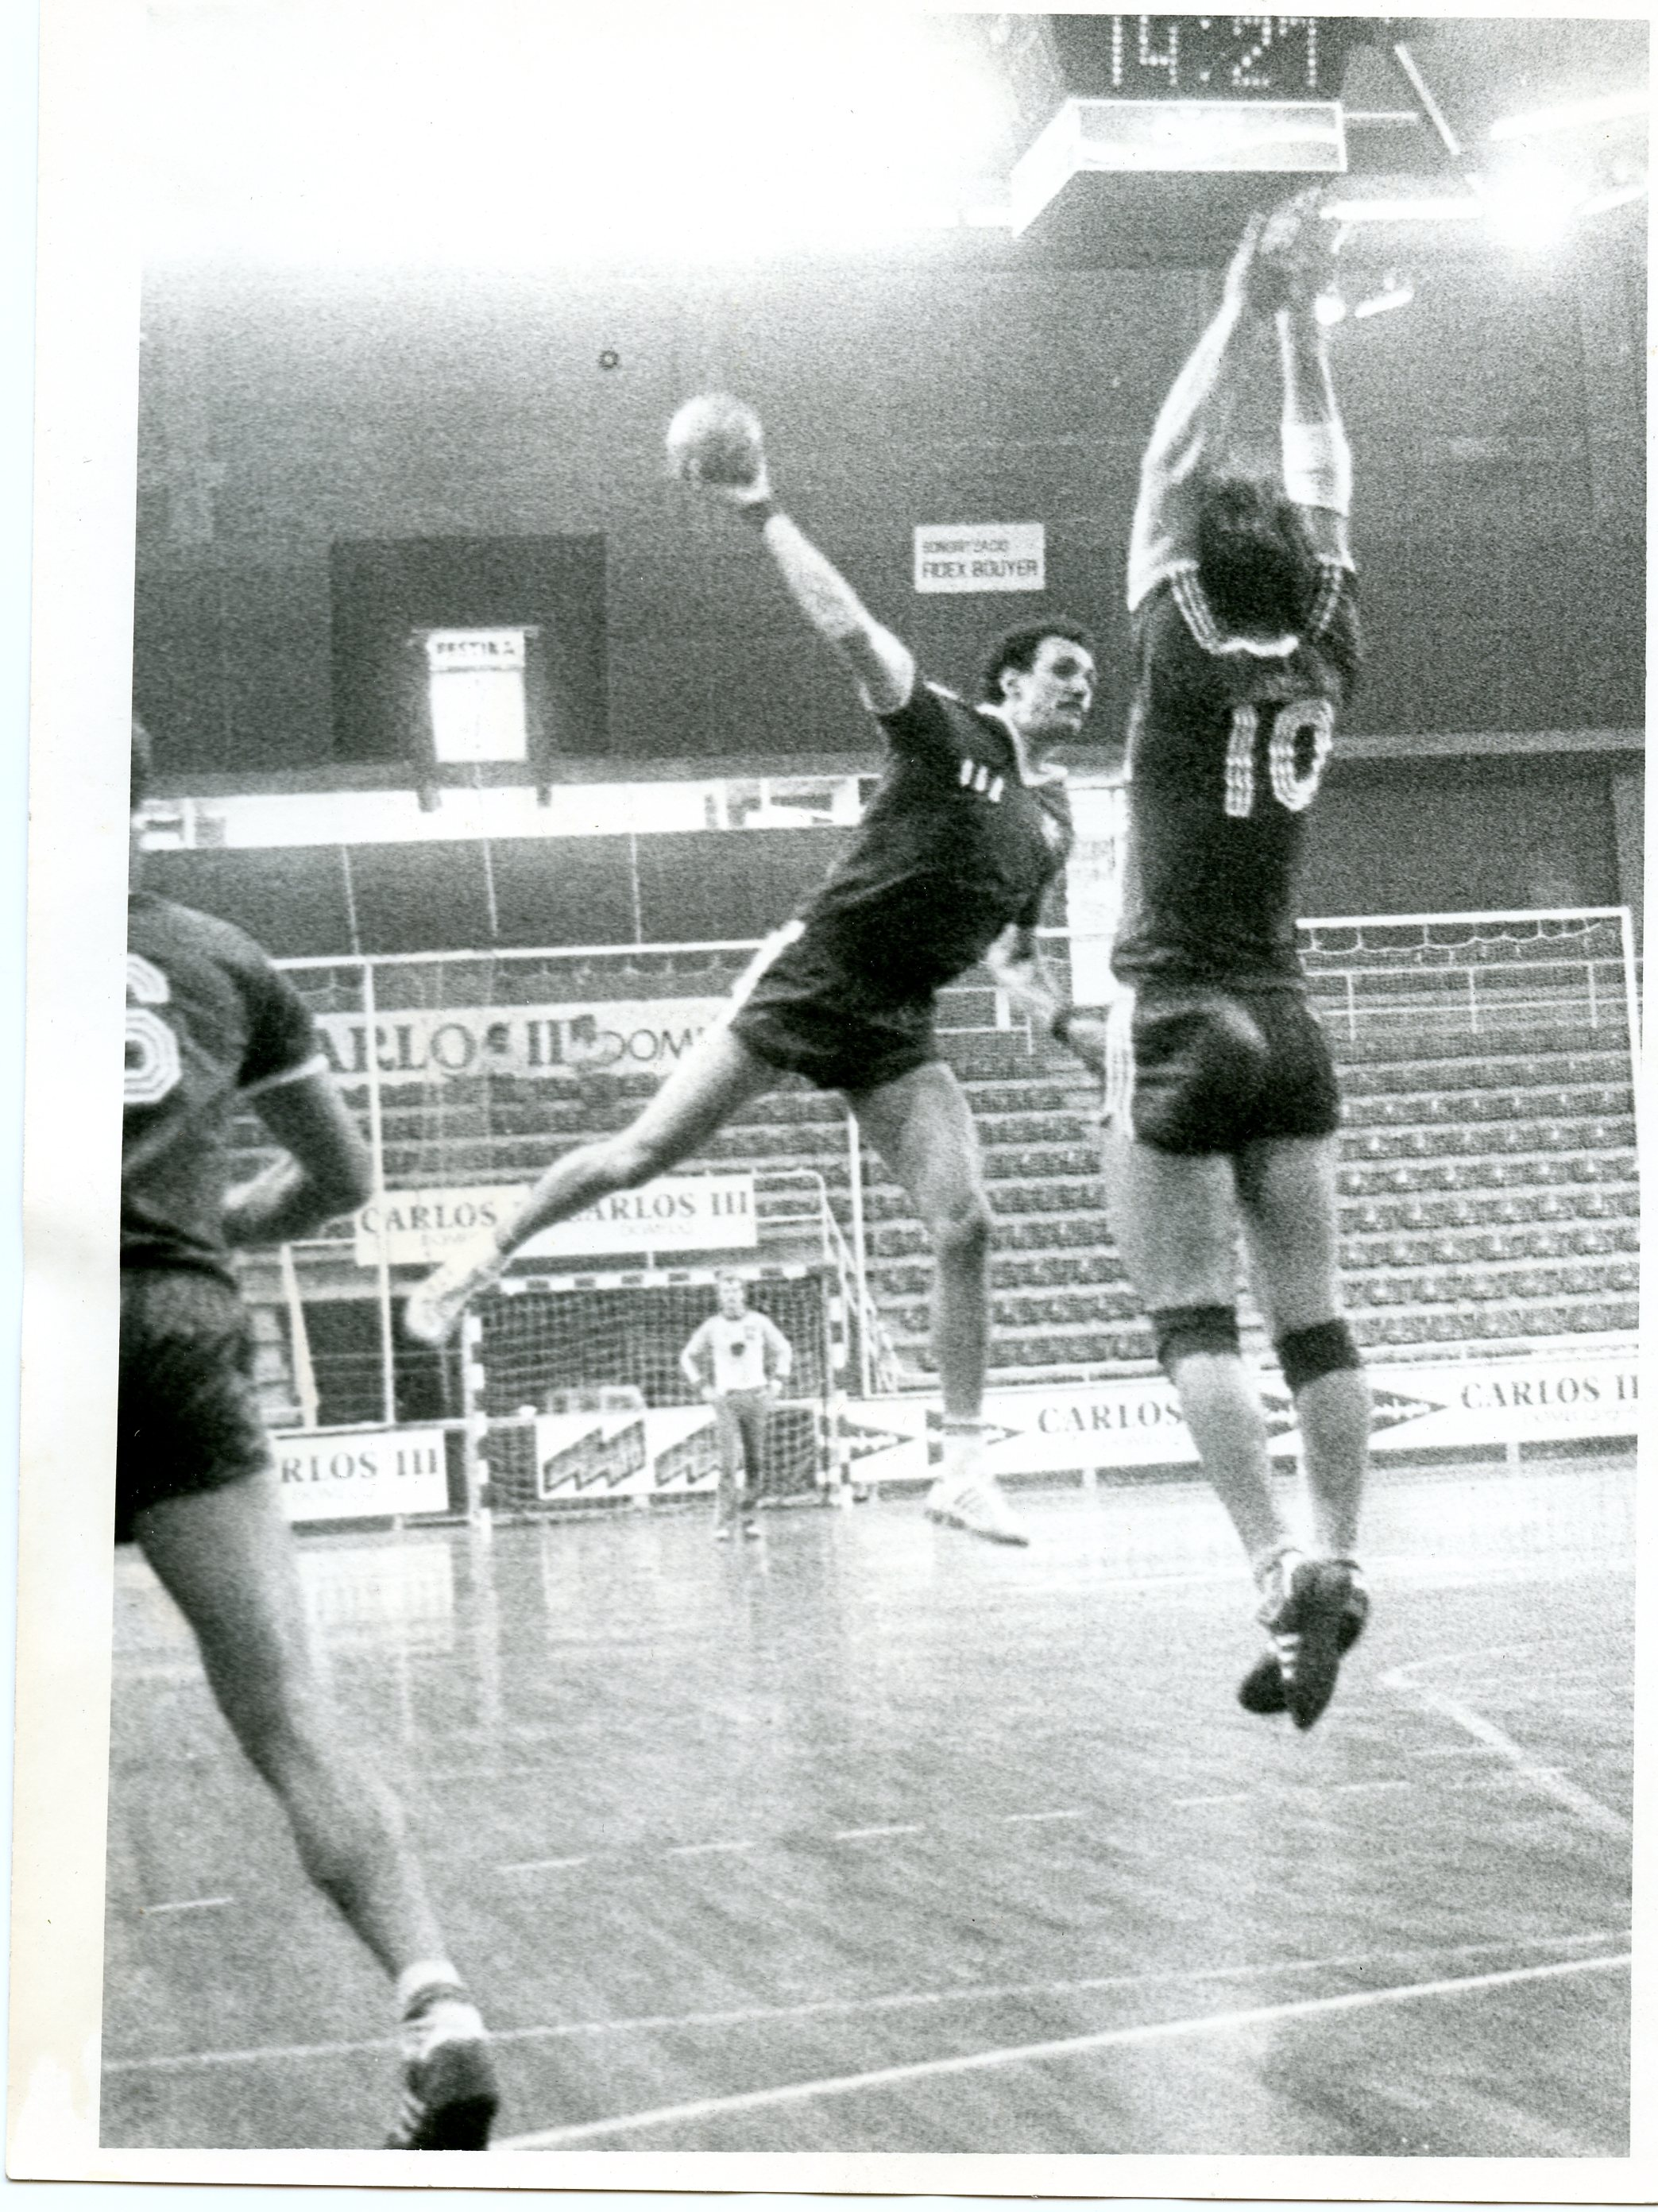 Bob Djokovic (throwing) against Switzerland (Barcelona, 1984) during the last preparation tournament before the Olympic Games in LA.